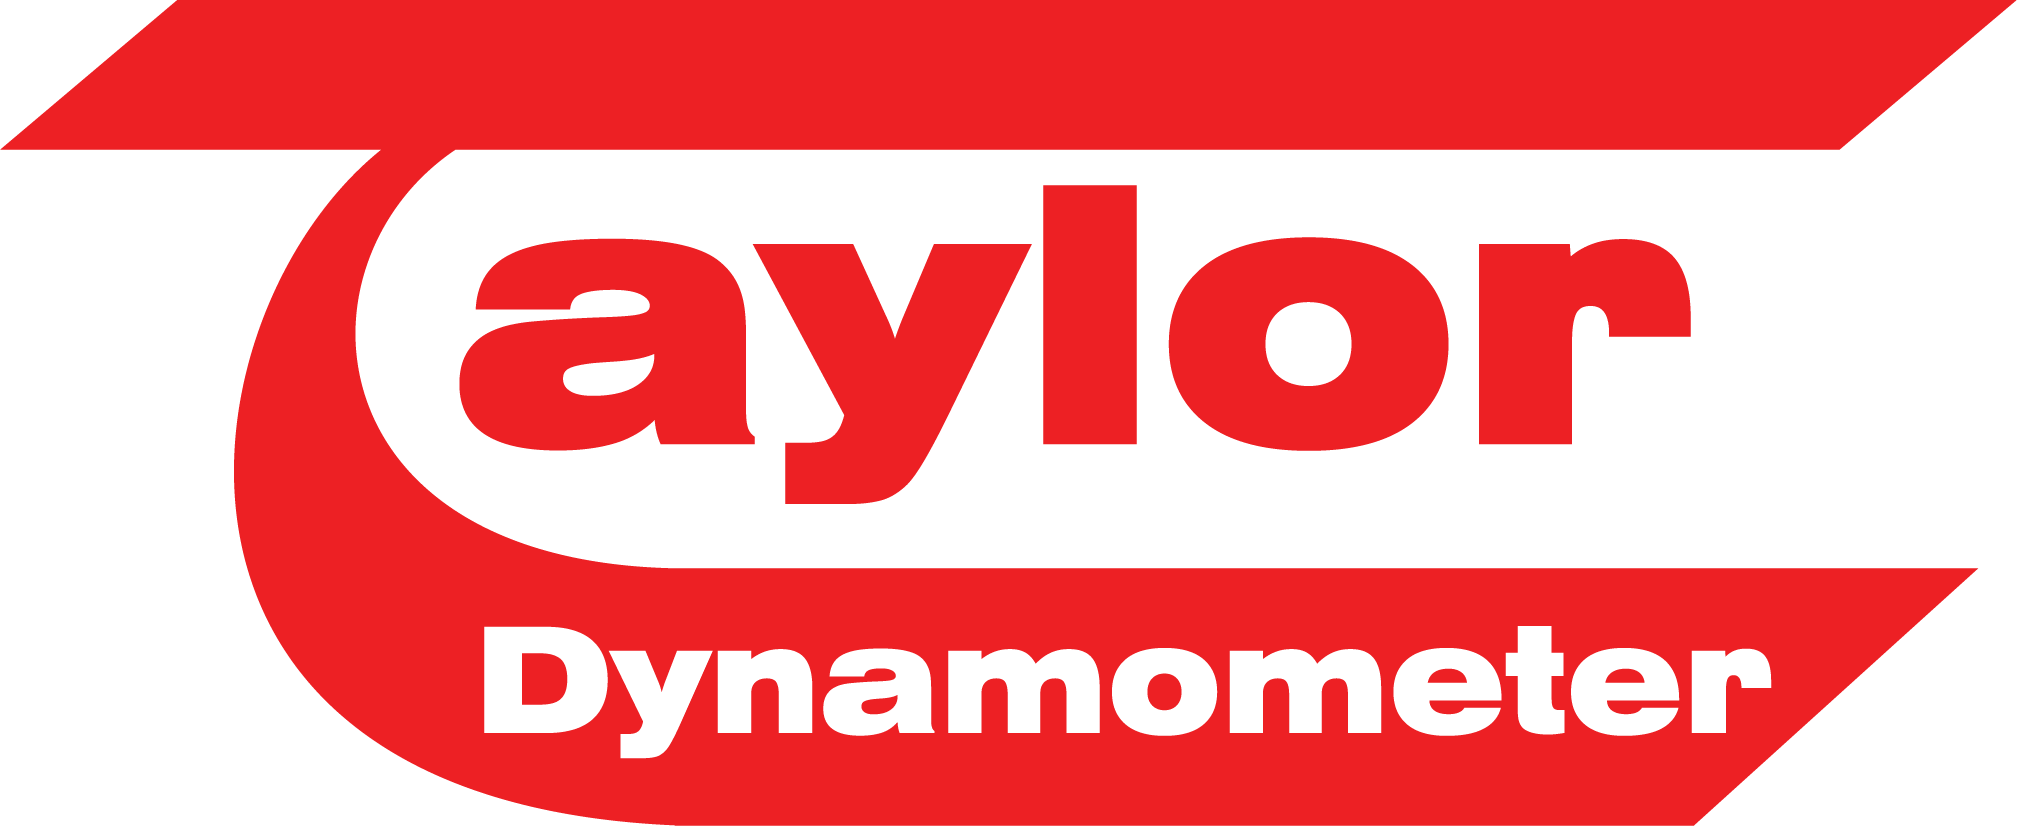 Taylor Logo Red.png